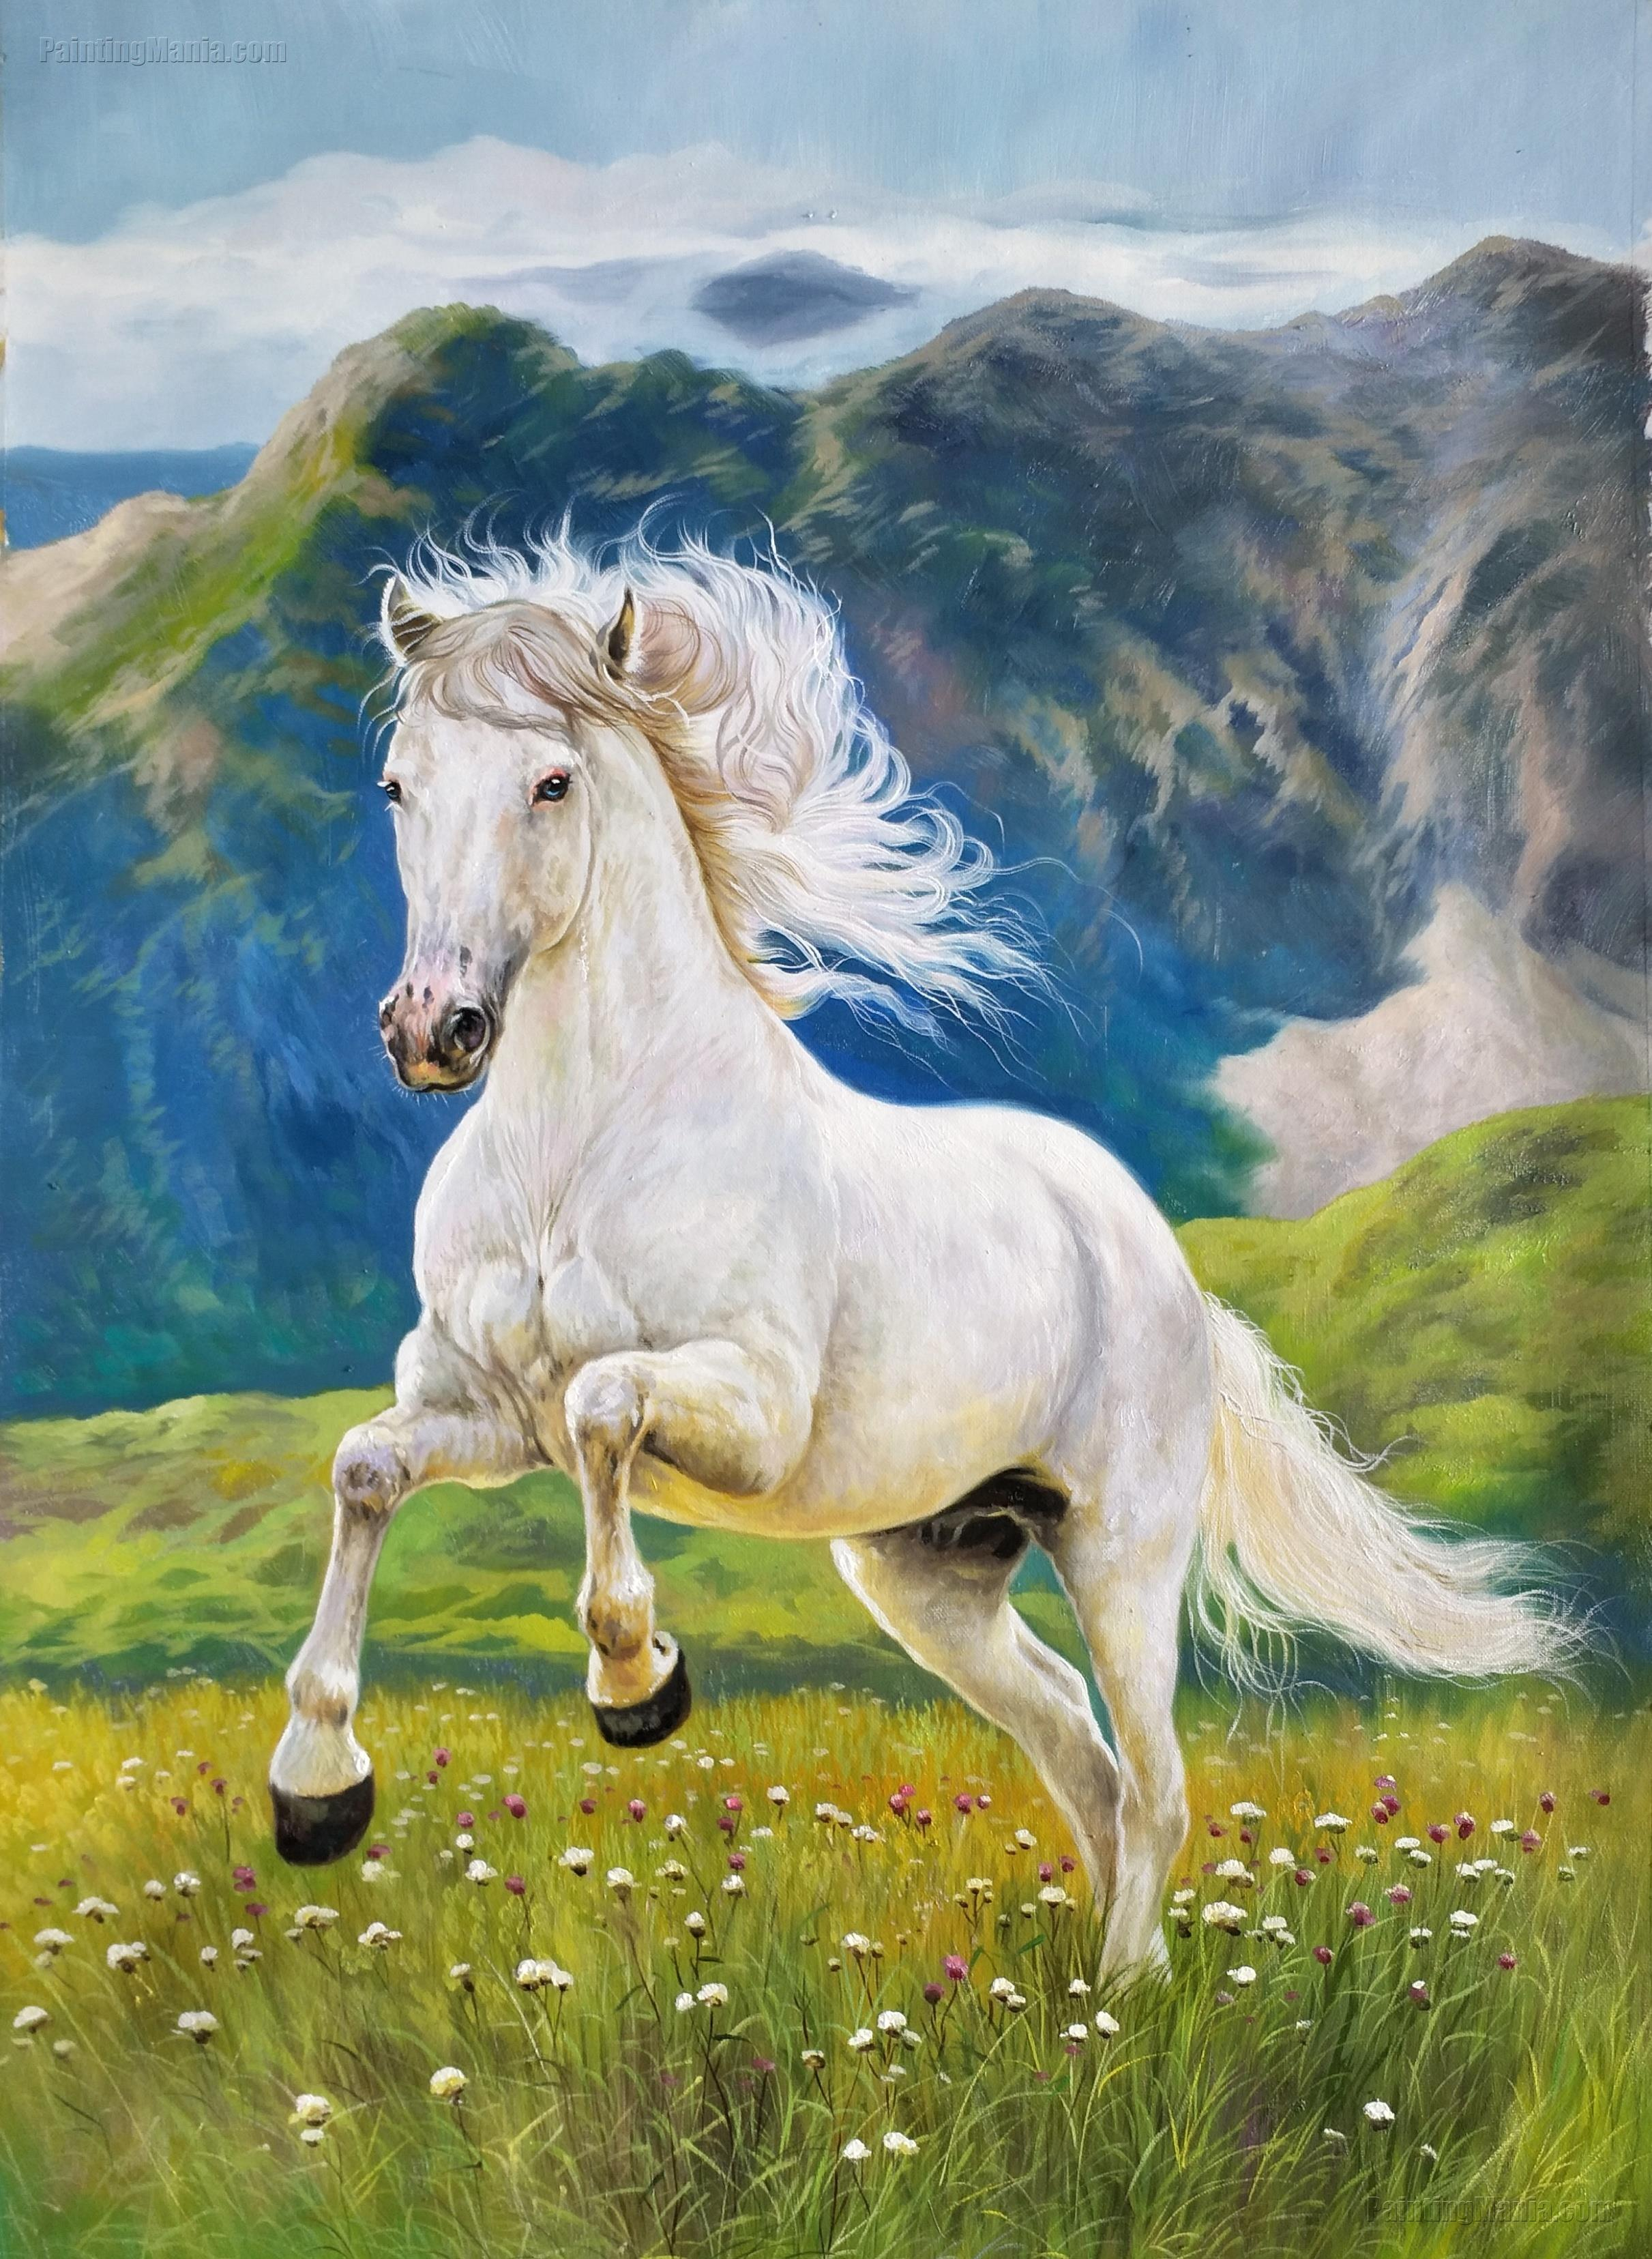 The White Horse Galloping on the Prairie